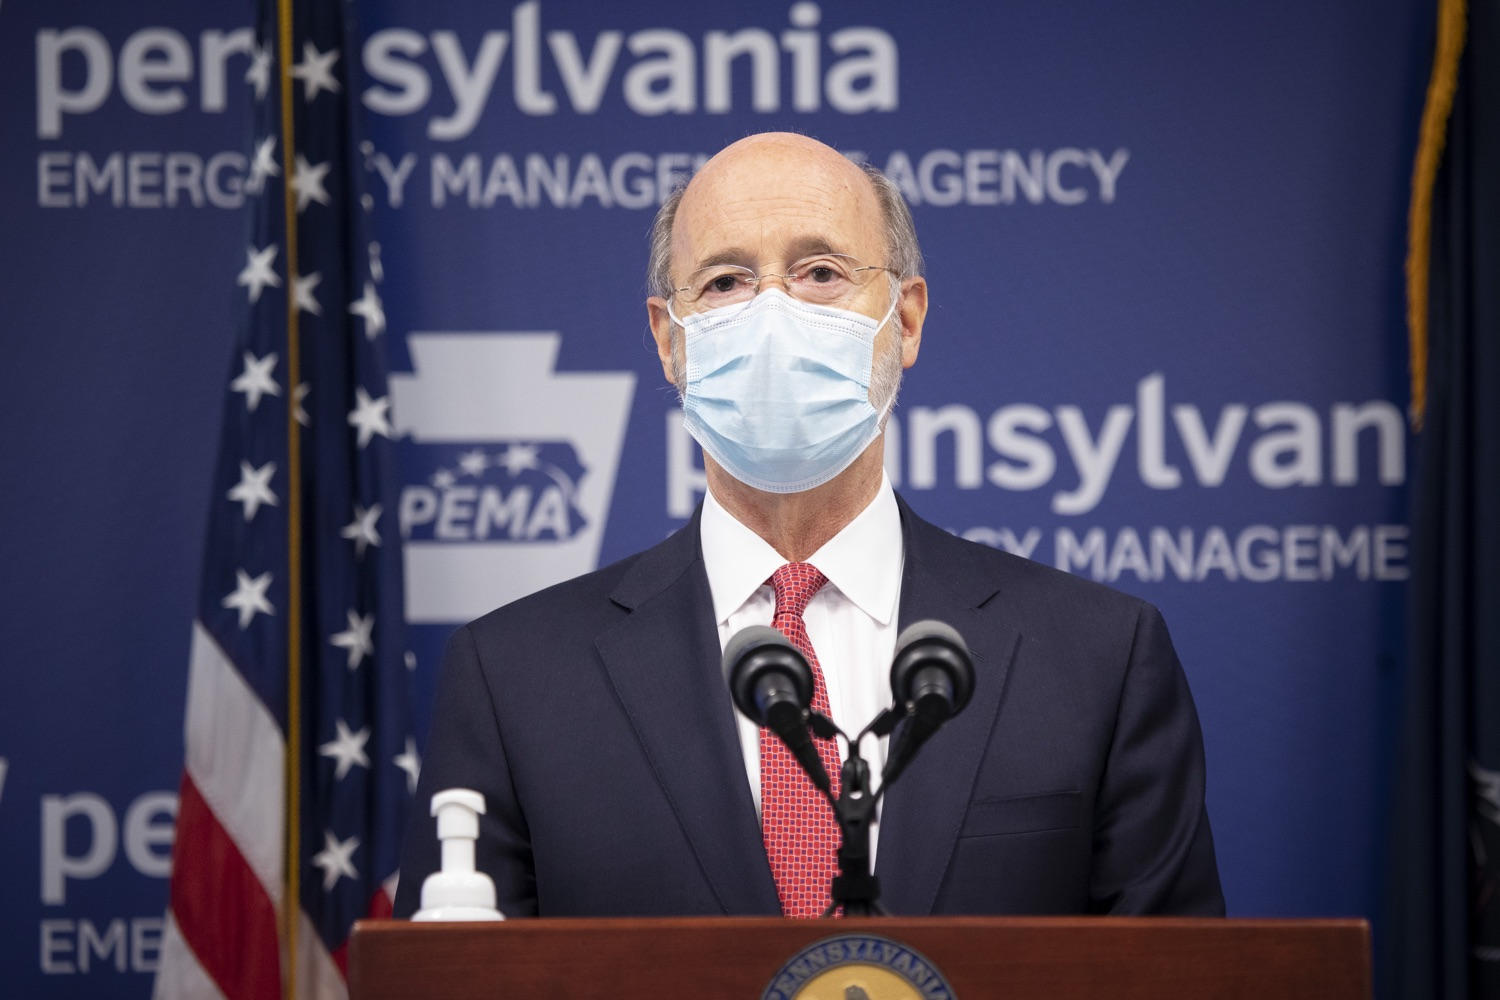 "<a href=""https://filesource.wostreaming.net/commonwealthofpa/photo/18405_gov_covidUpdate_dz_001.jpg"" target=""_blank"">⇣ Download Photo<br></a>Pennsylvania Governor Tom Wolf answers questions from the press.  With new modeling projecting 22,000 new COVID-19 cases per day in Pennsylvania in December, Governor Tom Wolf and Secretary of Health Dr. Rachel Levine today announced new targeted mitigation measures to help stop the spread during this critical time. These include a robust enforcement plan targeted at chronic violators along with an effort to ensure schools are safe and in compliance with COVID safety plans. The administration is also encouraging Pennsylvanians to limit unnecessary travel and stay at home.  Harrisburg, Pa. November 23, 2020"